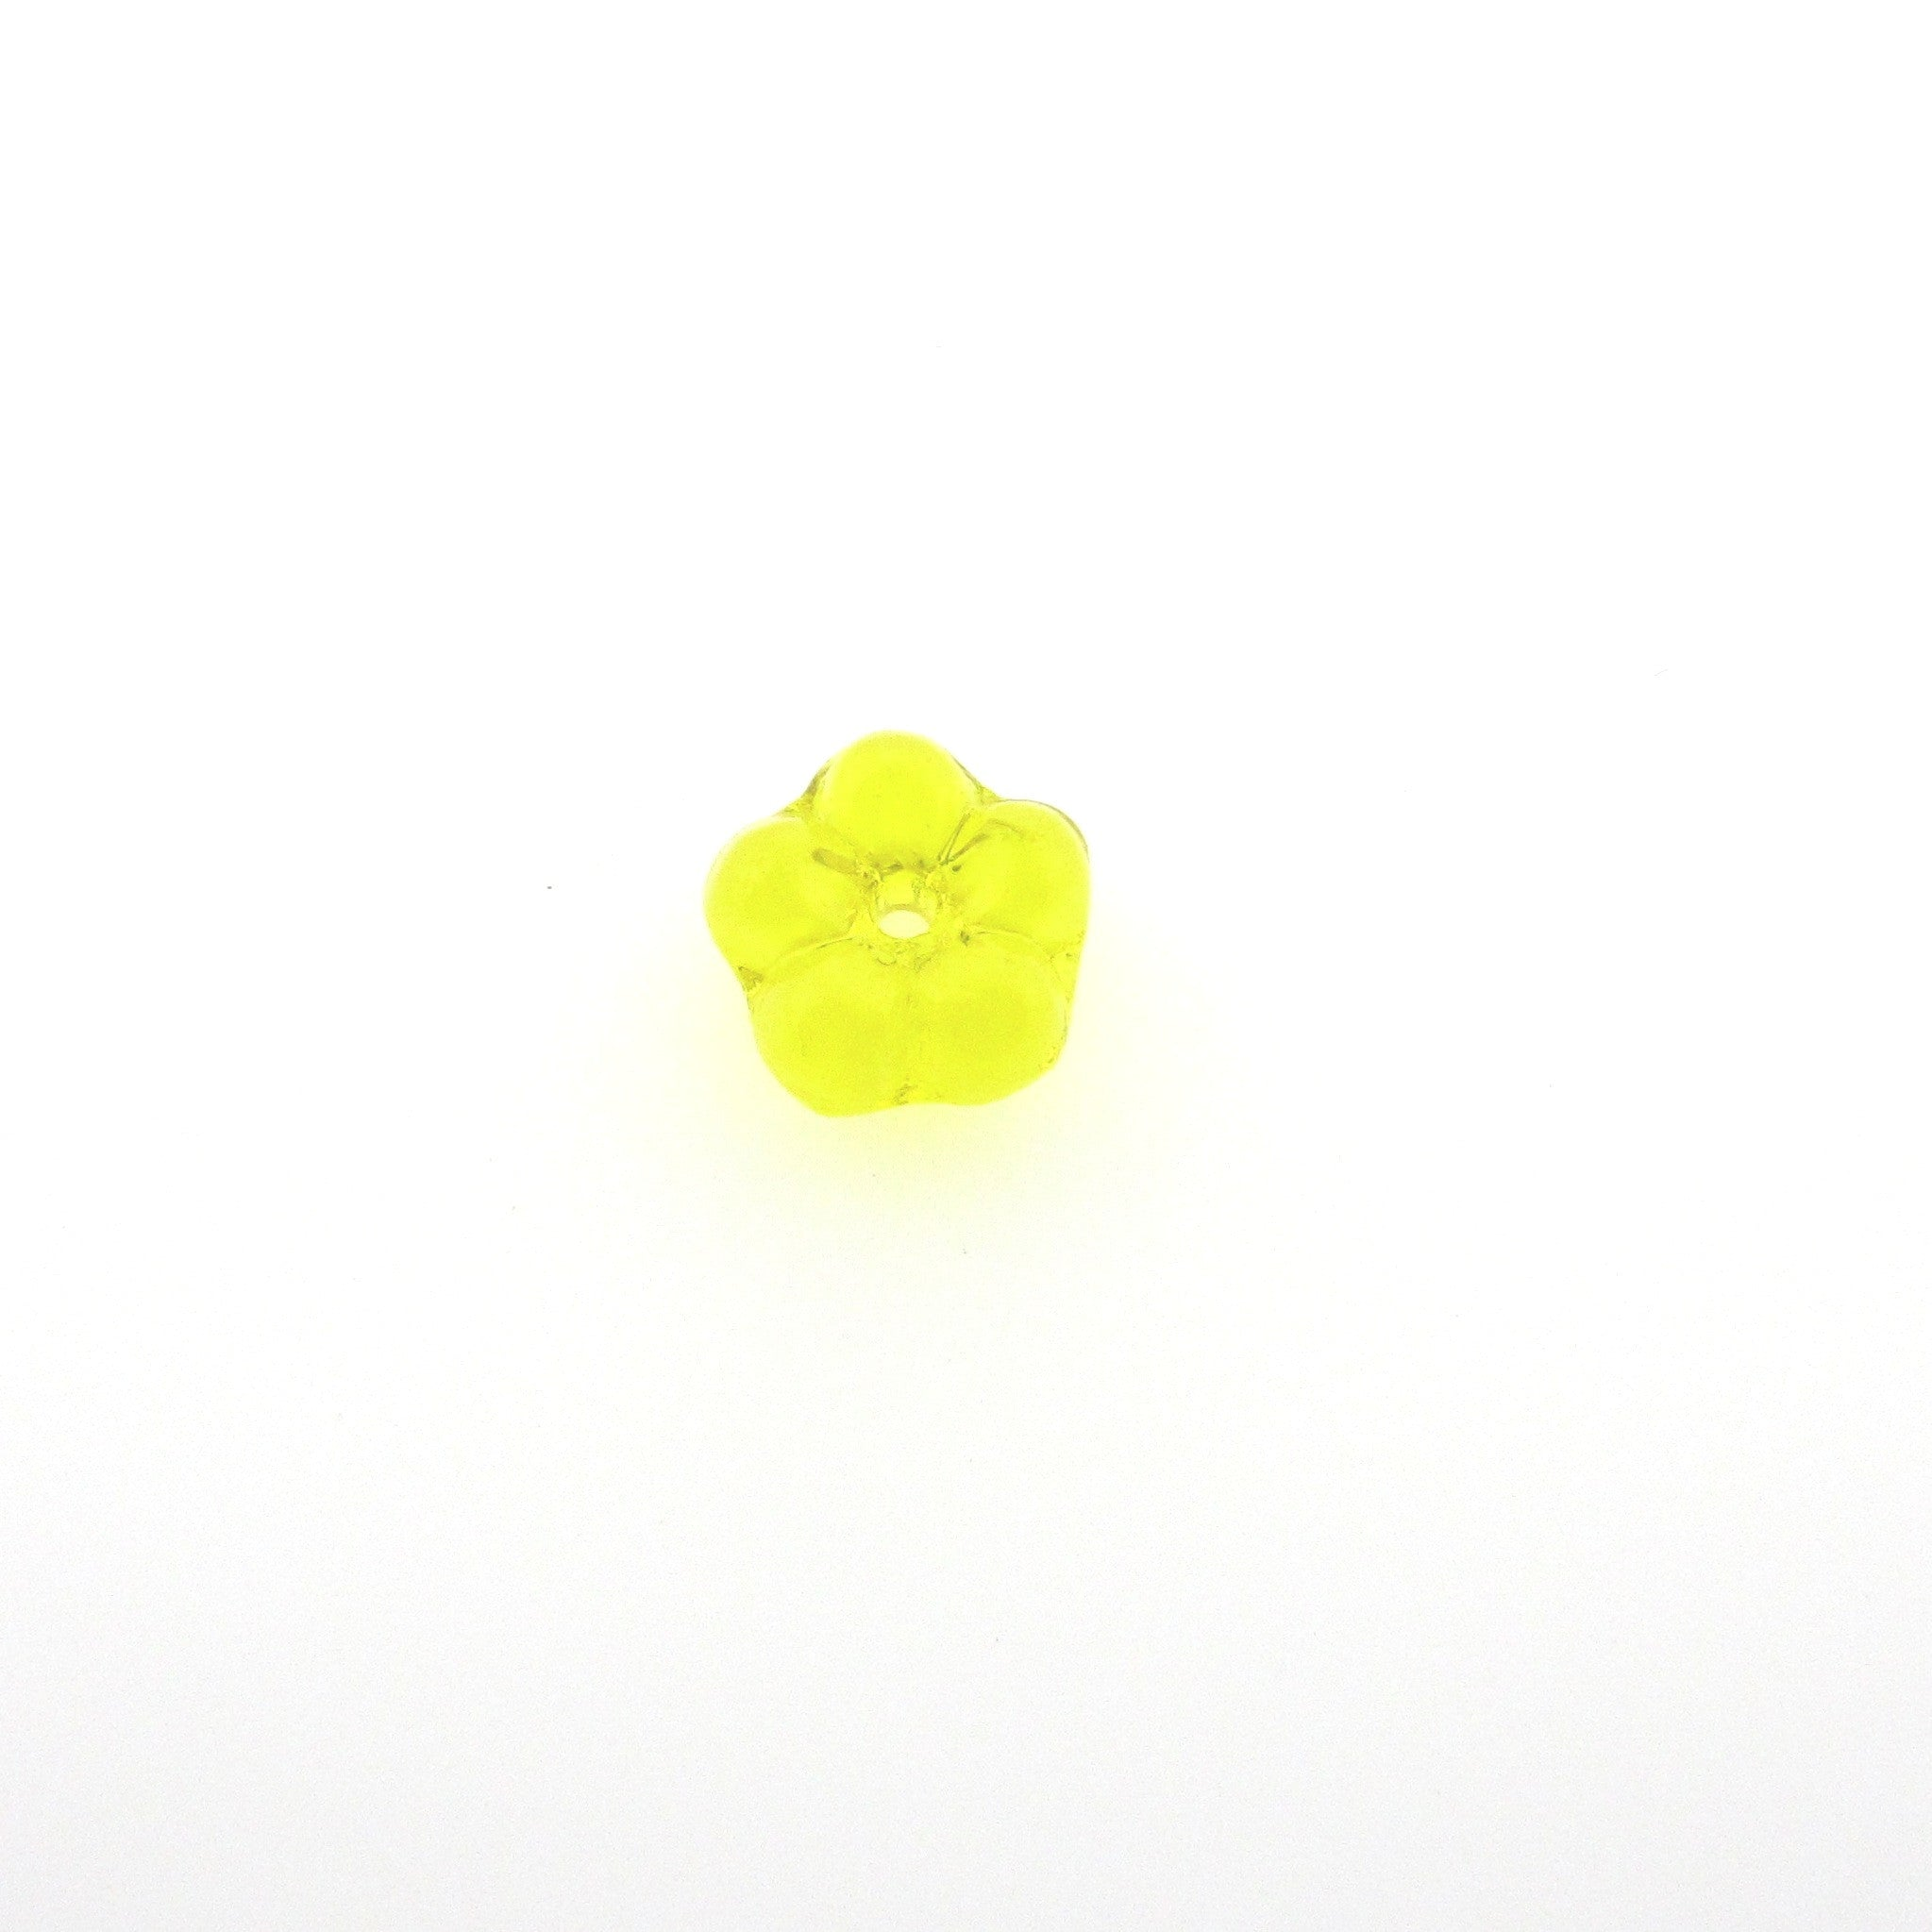 7MM Yellow Flower Glass Rondel (72 pieces)